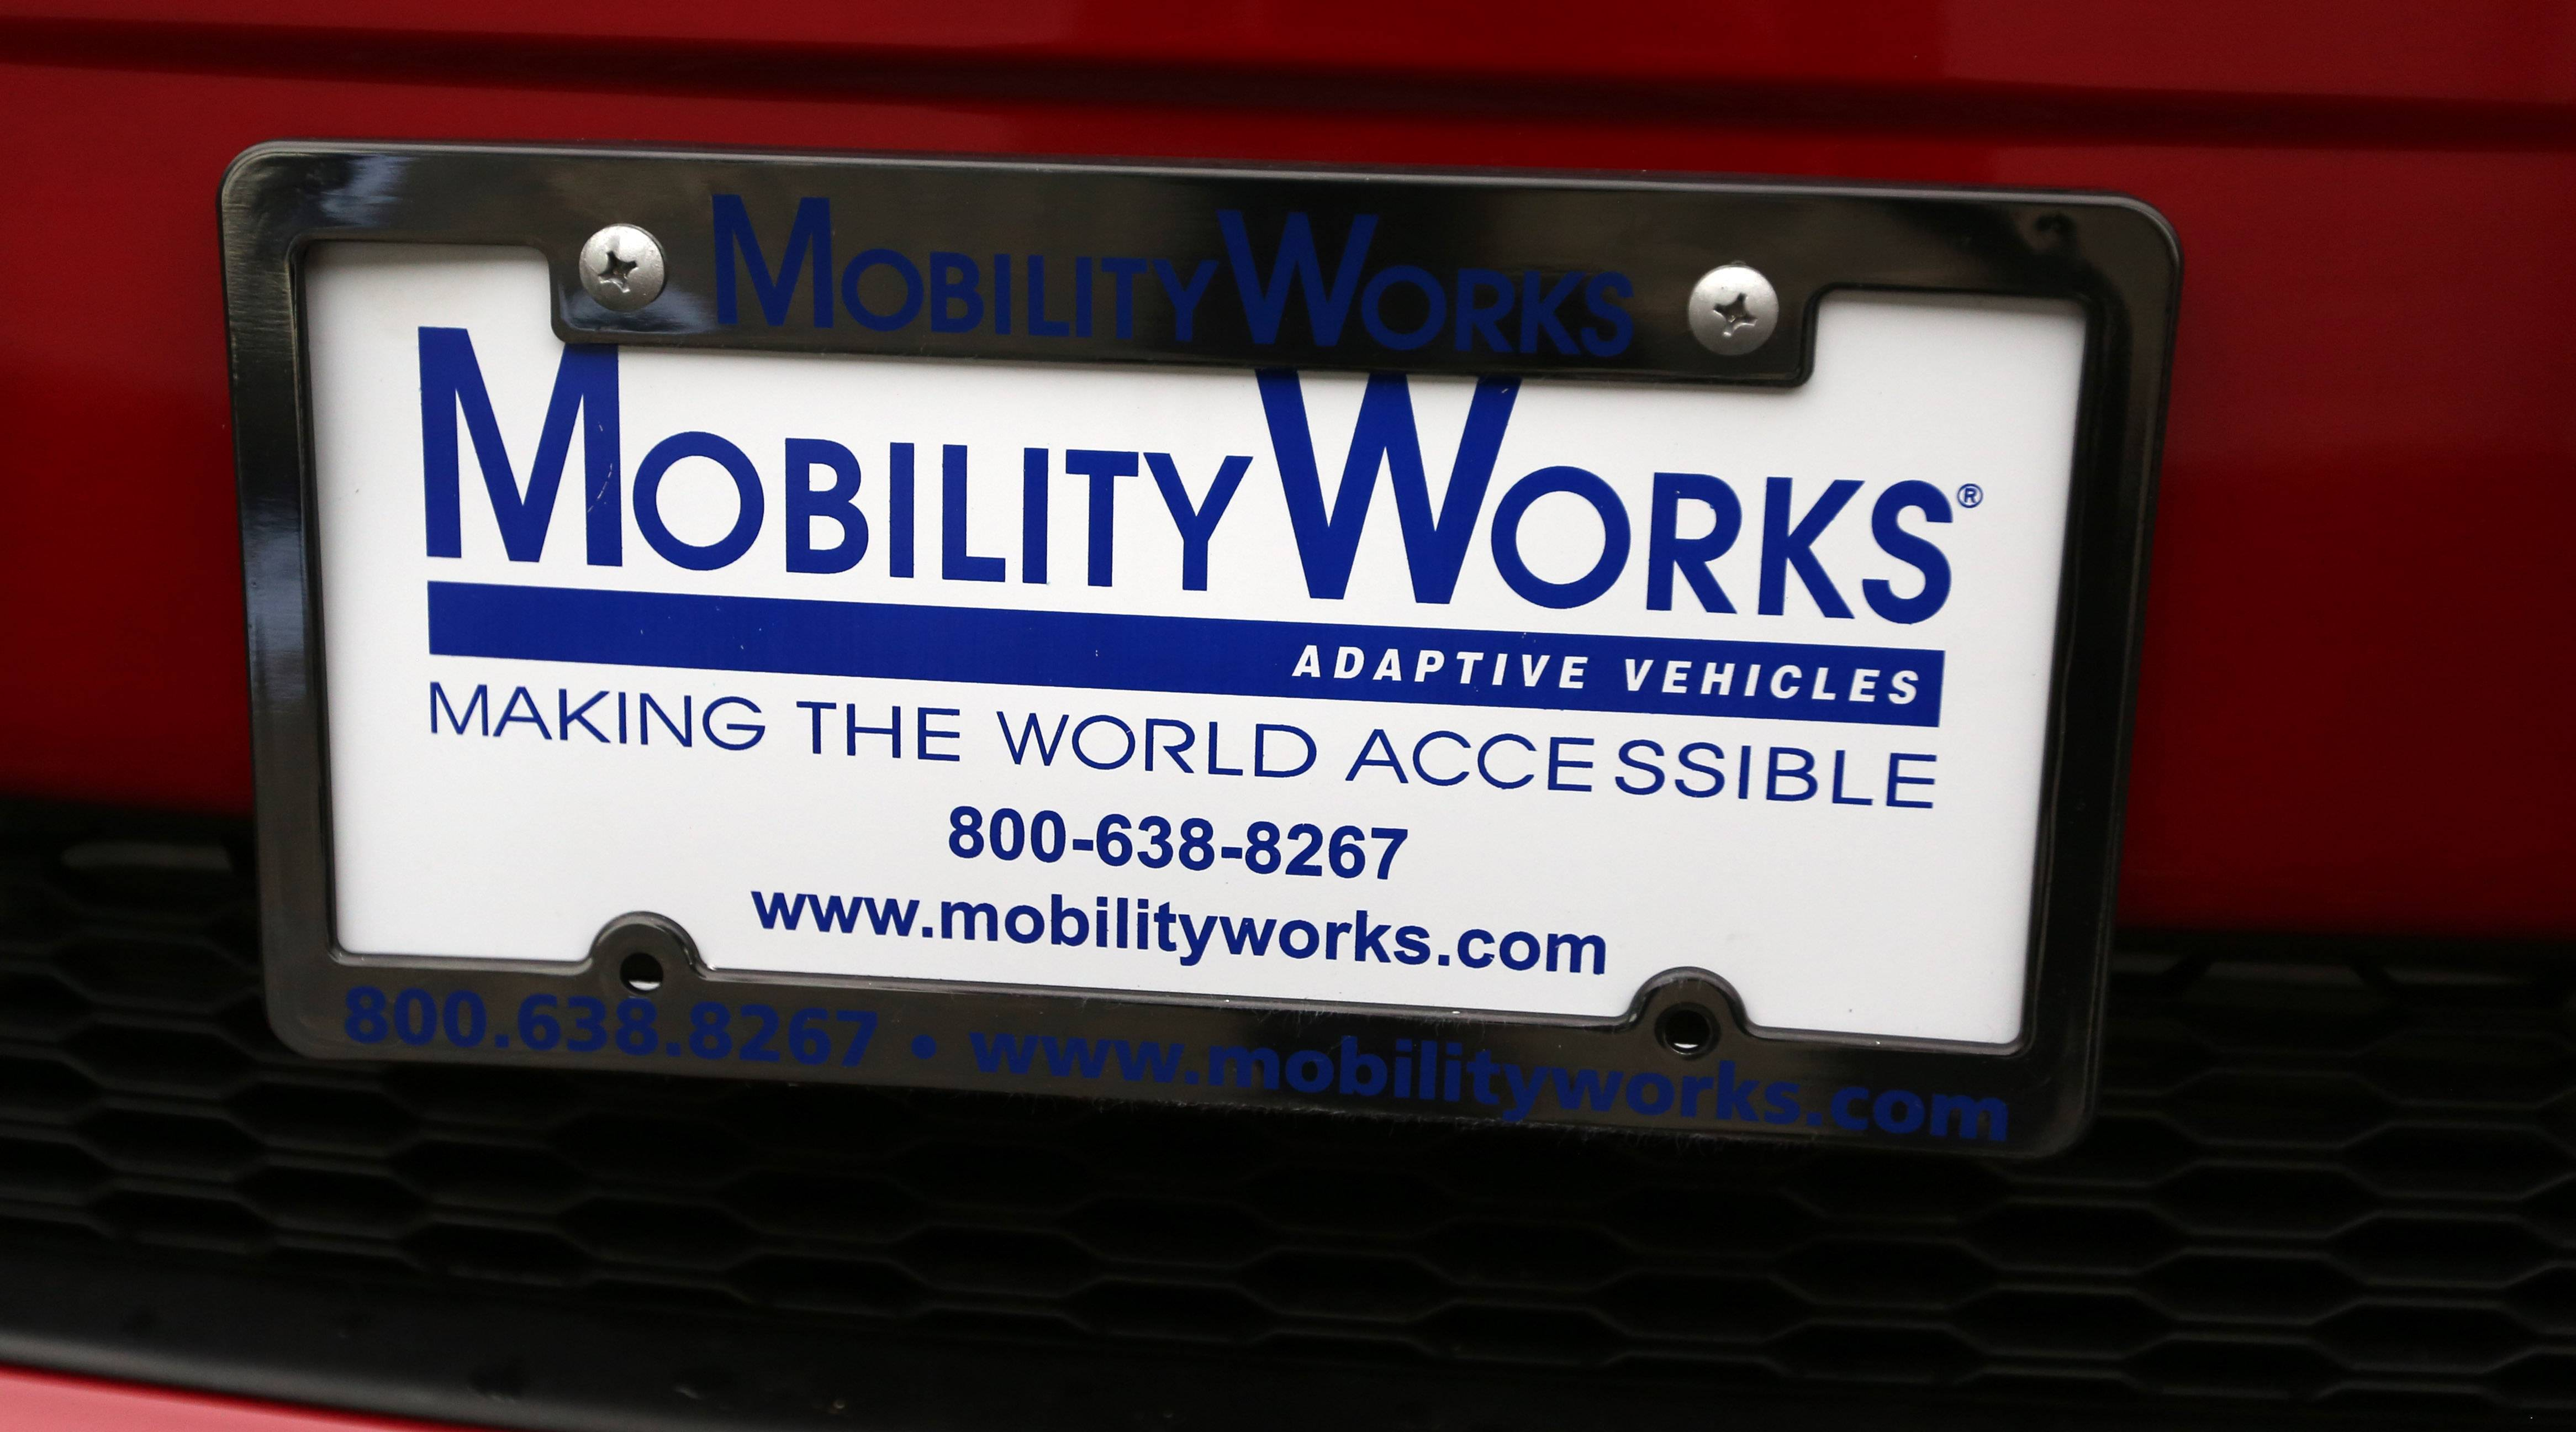 The Fulkerson family of Schaumburg bought their new van through Mobility Works, a national dealership specializing in vehicles modified to accommodate people with disabilities.